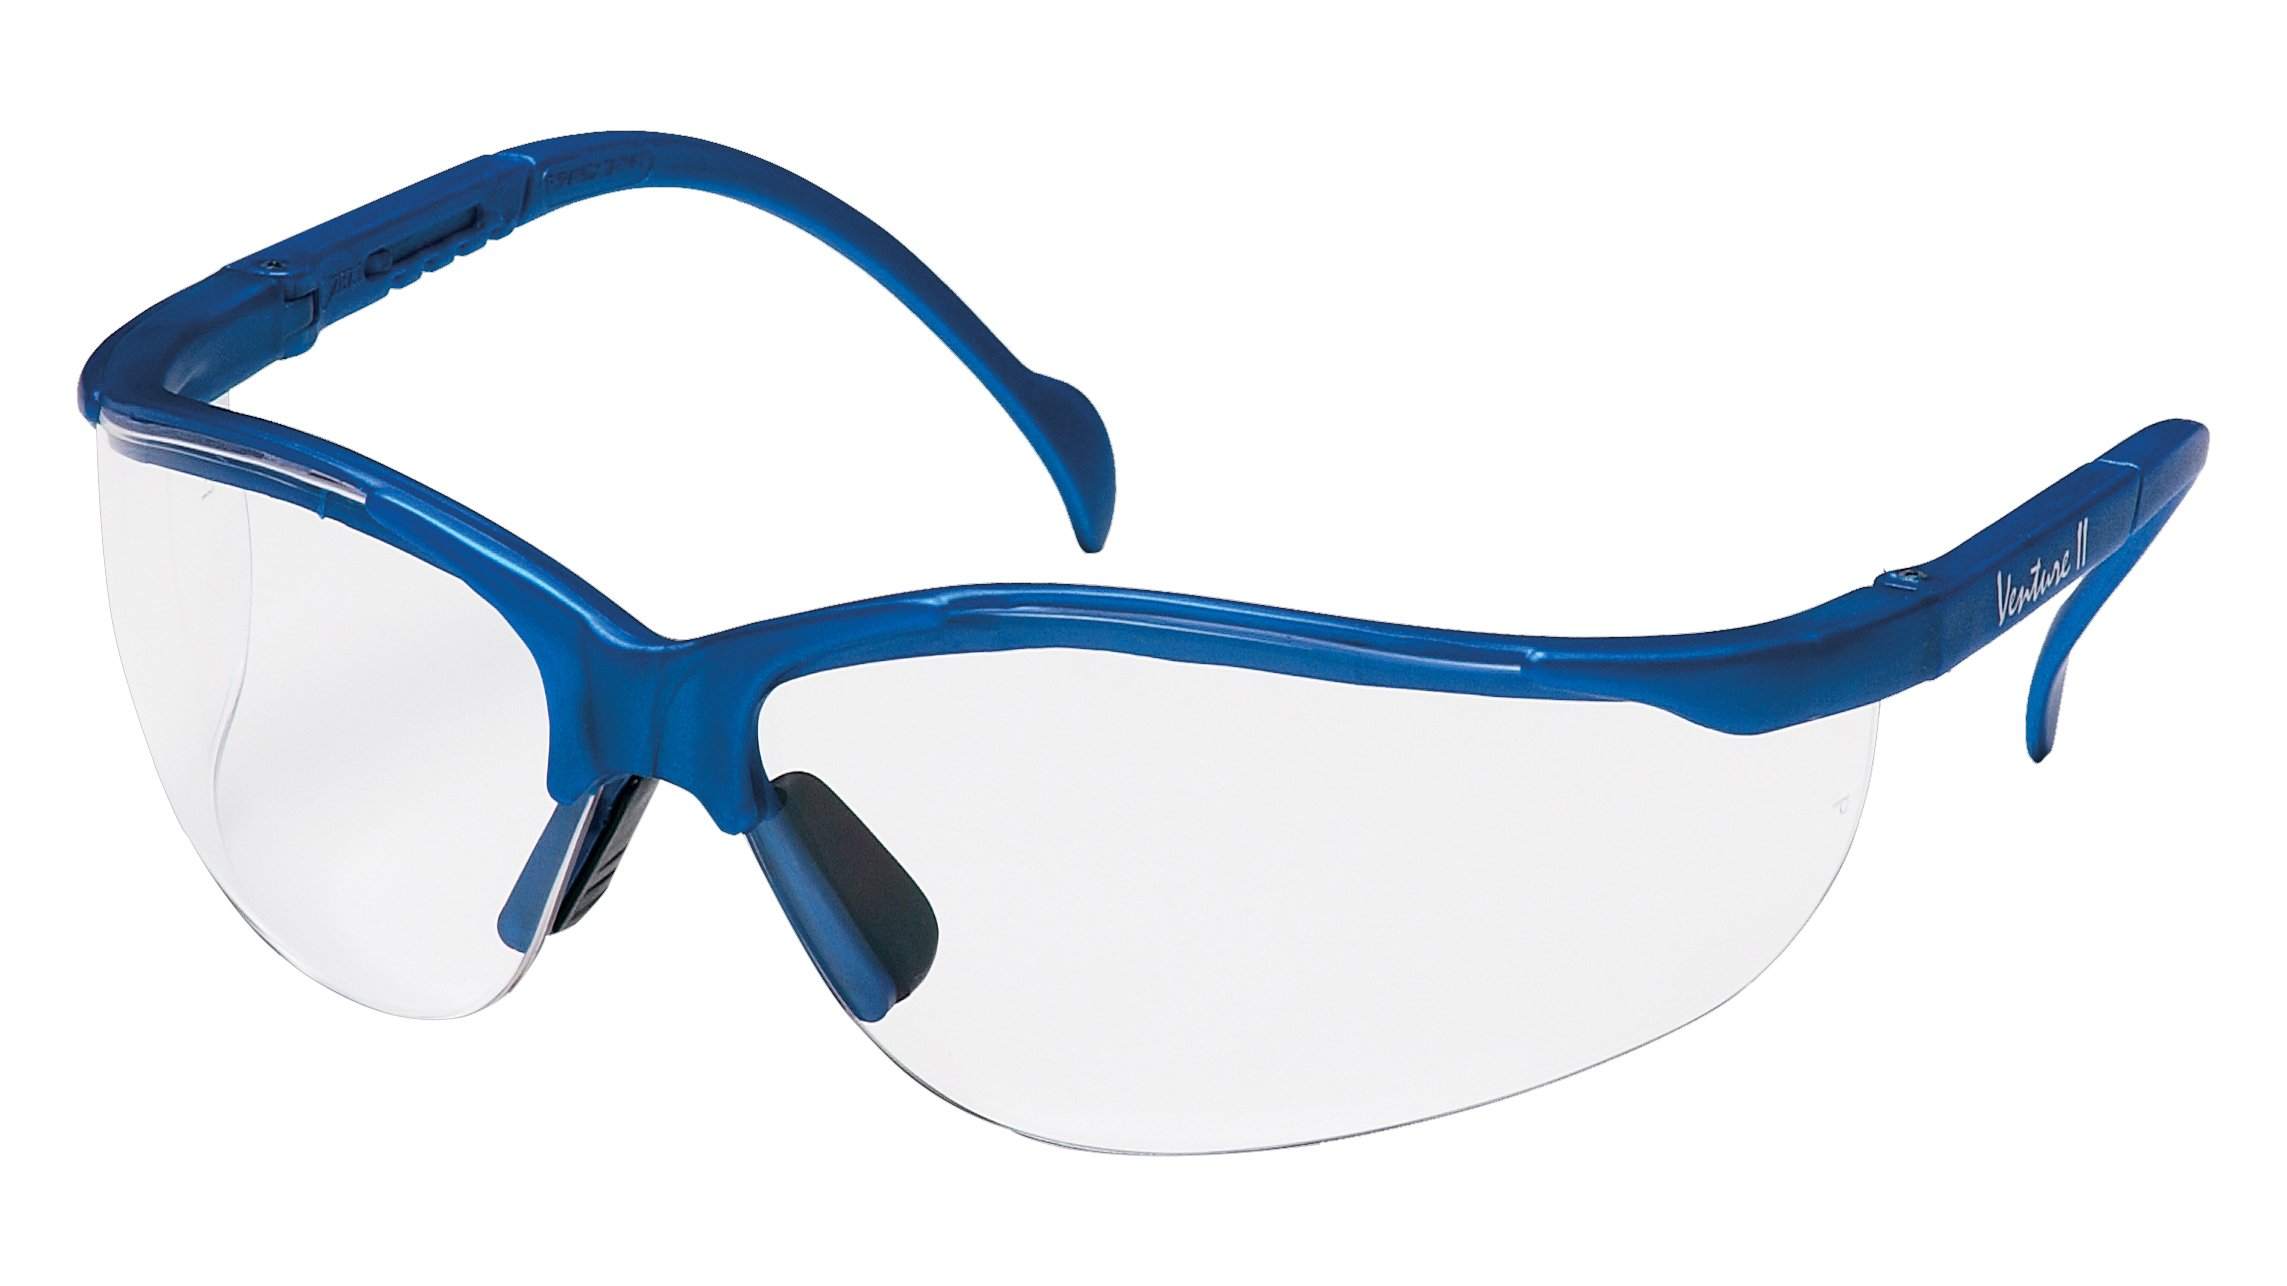 Pyramex Venture Ii Safety Eyewear, Clear Lens With Metallic Blue Frame by Pyramex Safety